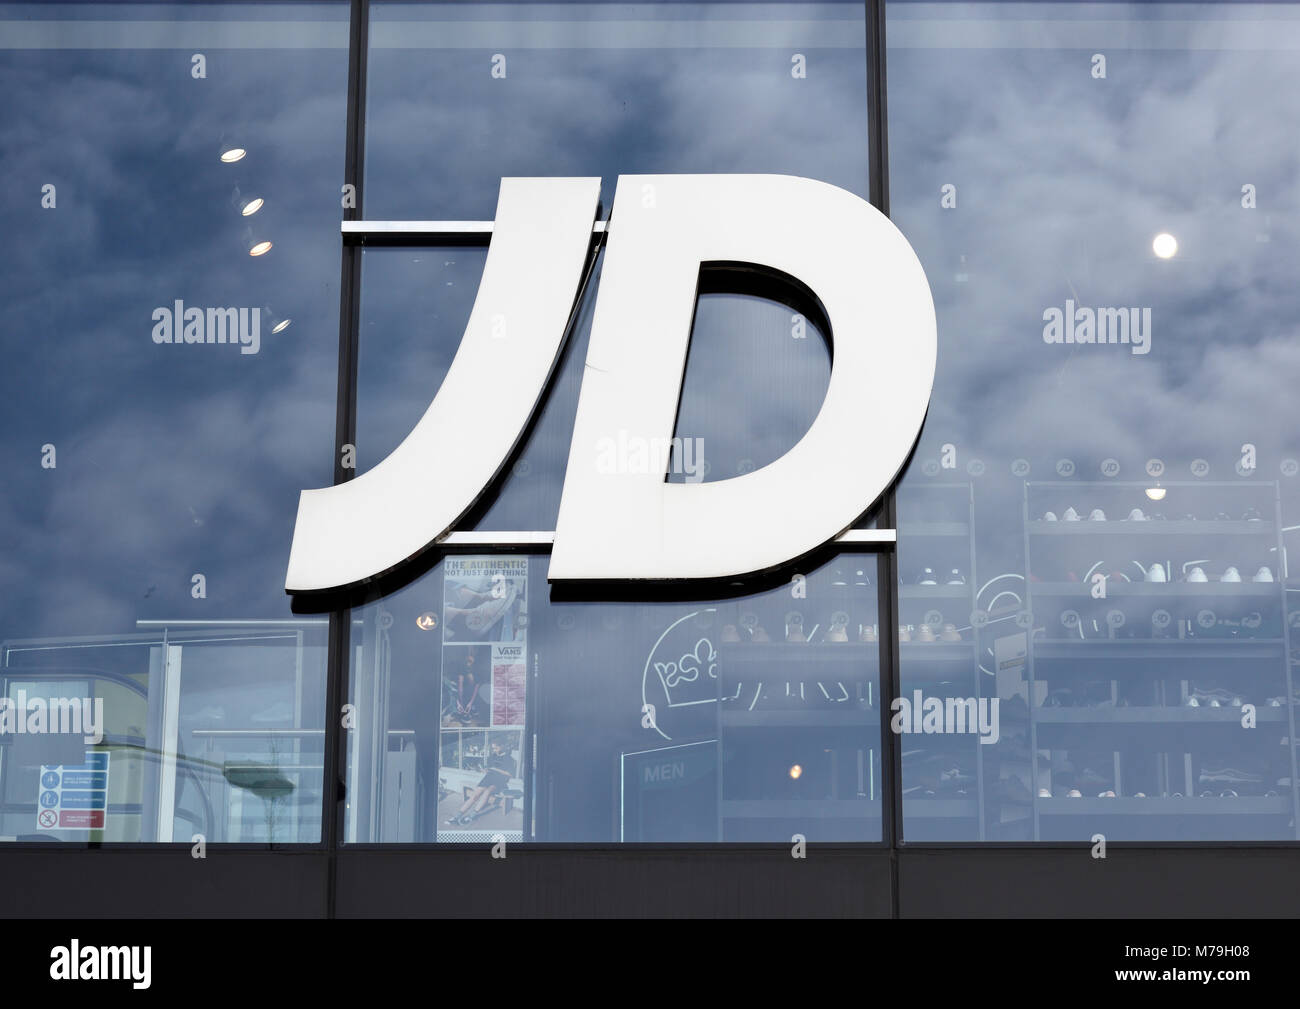 jd sports logo high resolution stock photography and images alamy https www alamy com stock photo jd sports logo on glass store front in bury lancashire uk 176617176 html